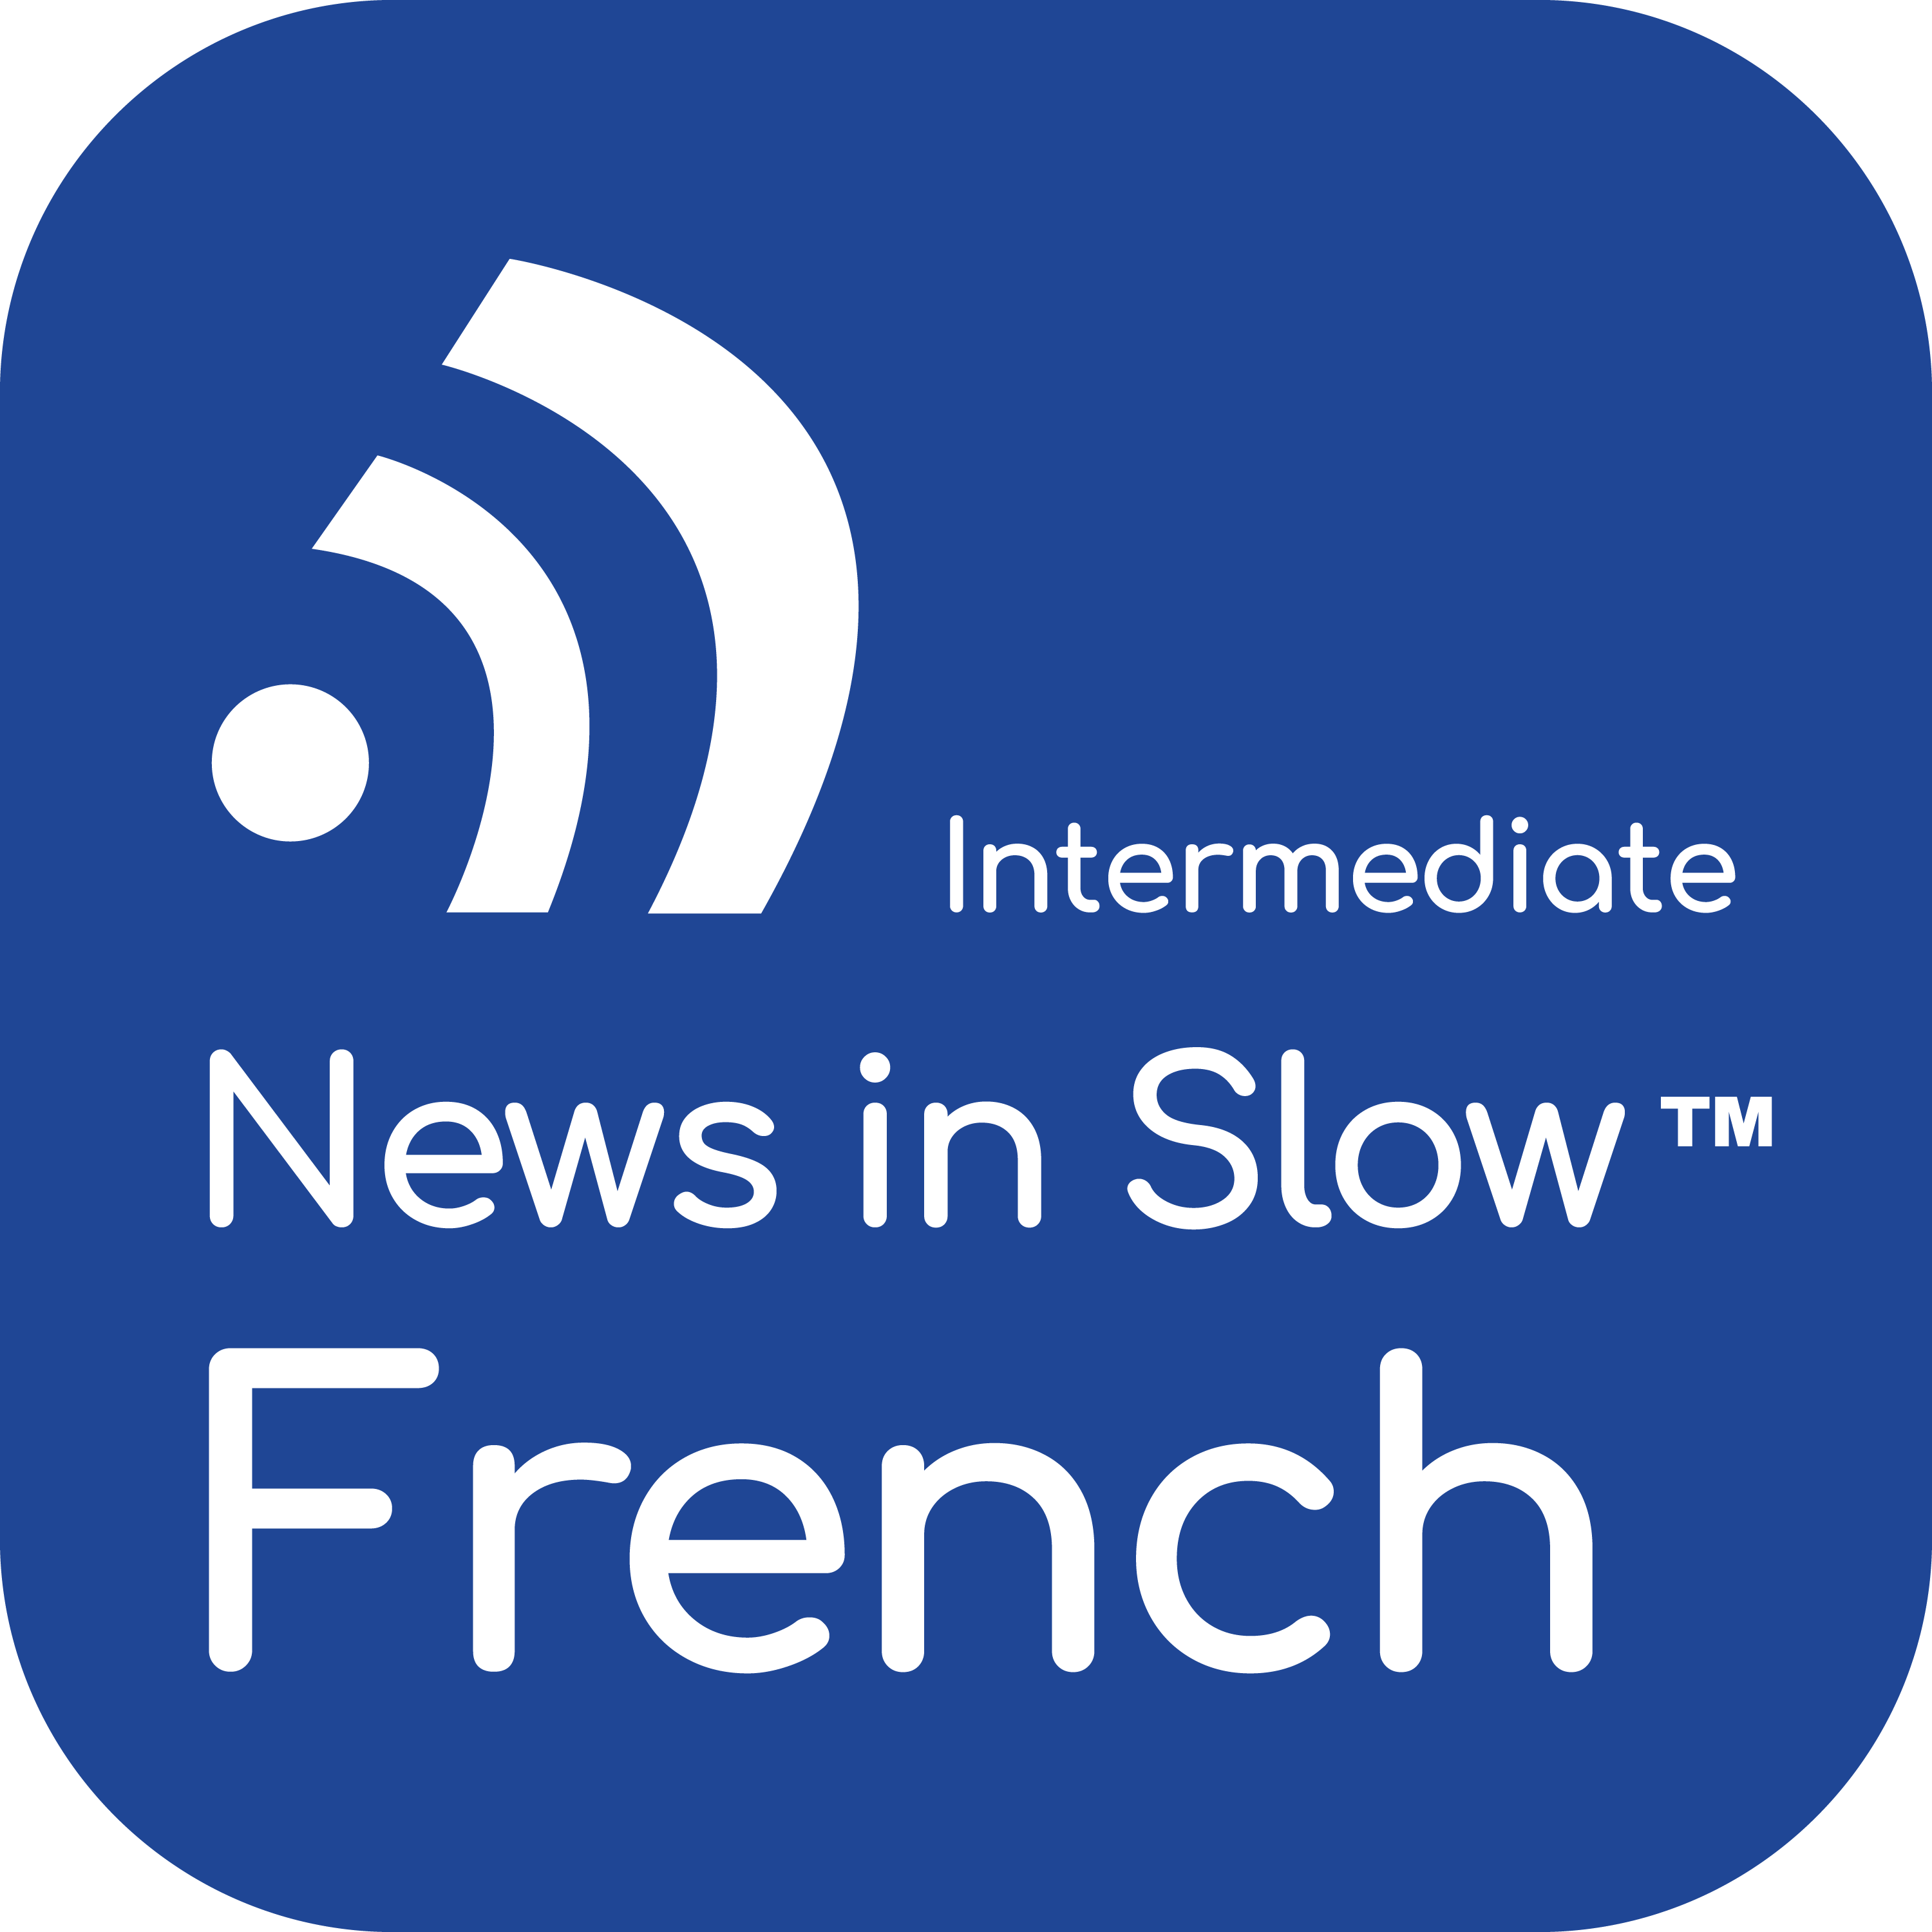 News in Slow French #495 - Best French Program for Intermediate Learners